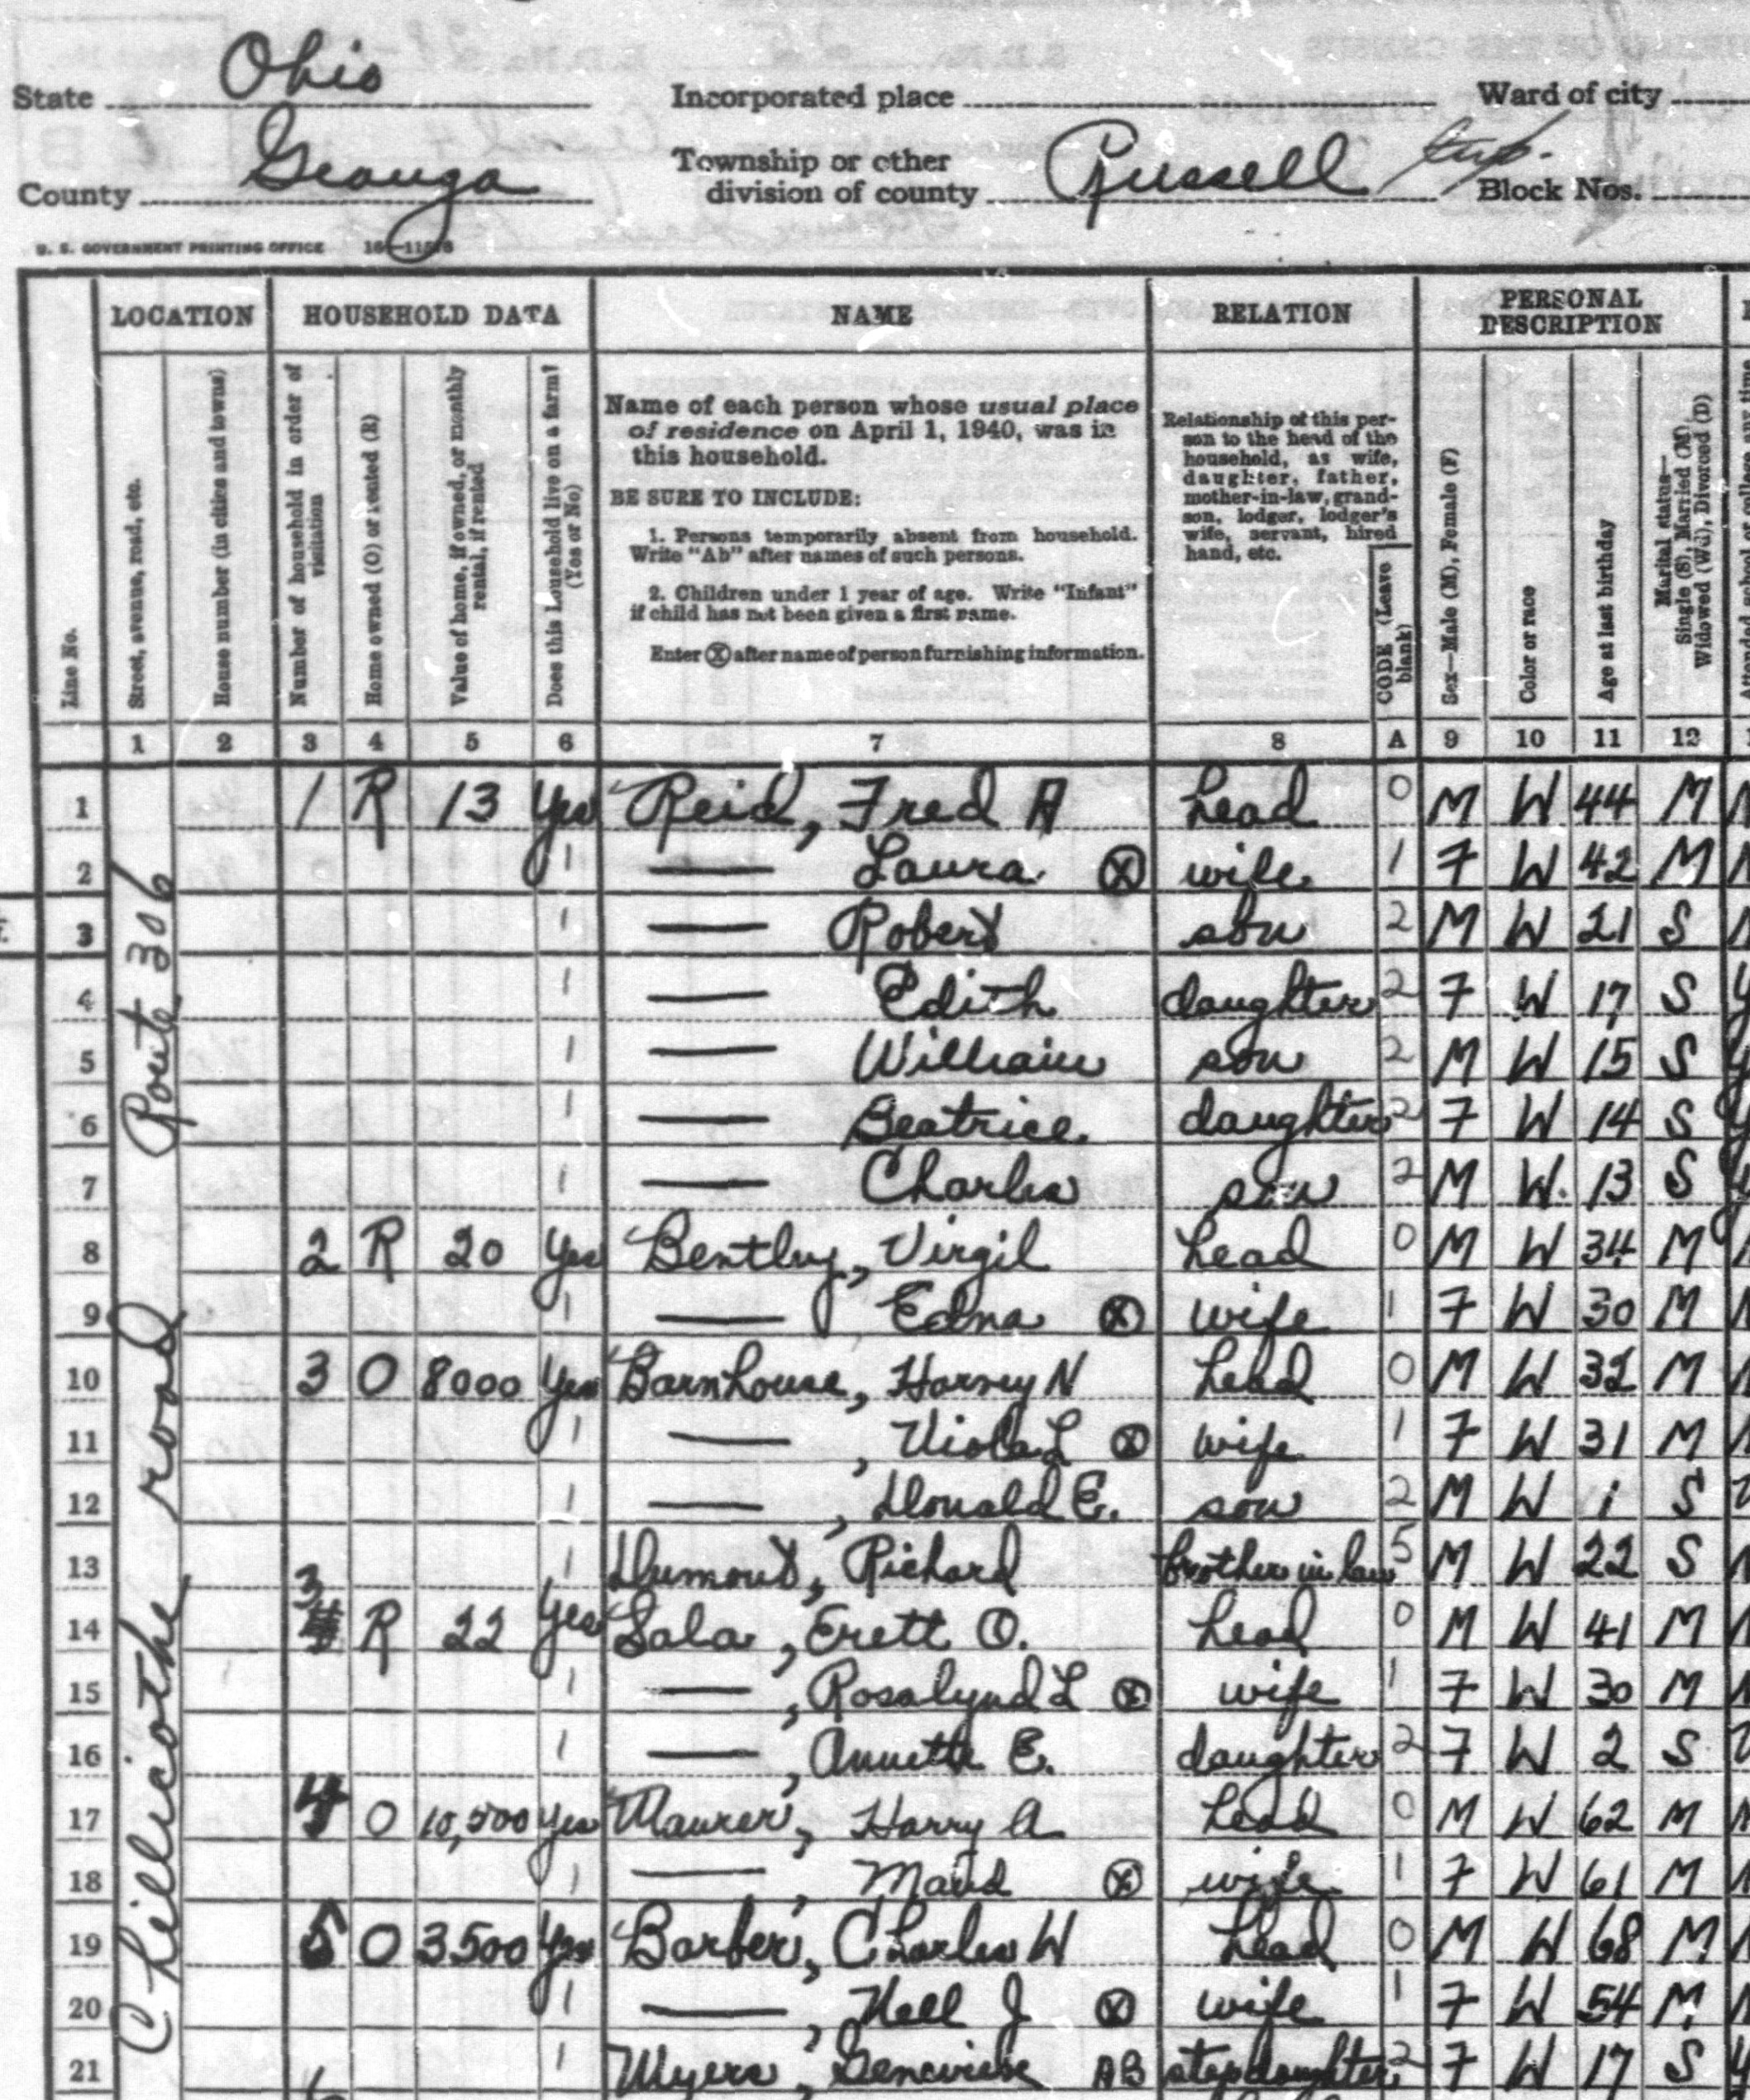 Detail from T627, 1940 Census, Enumeration District 28-19, Sheet 1A, Russell Township, Geauga County, Ohio